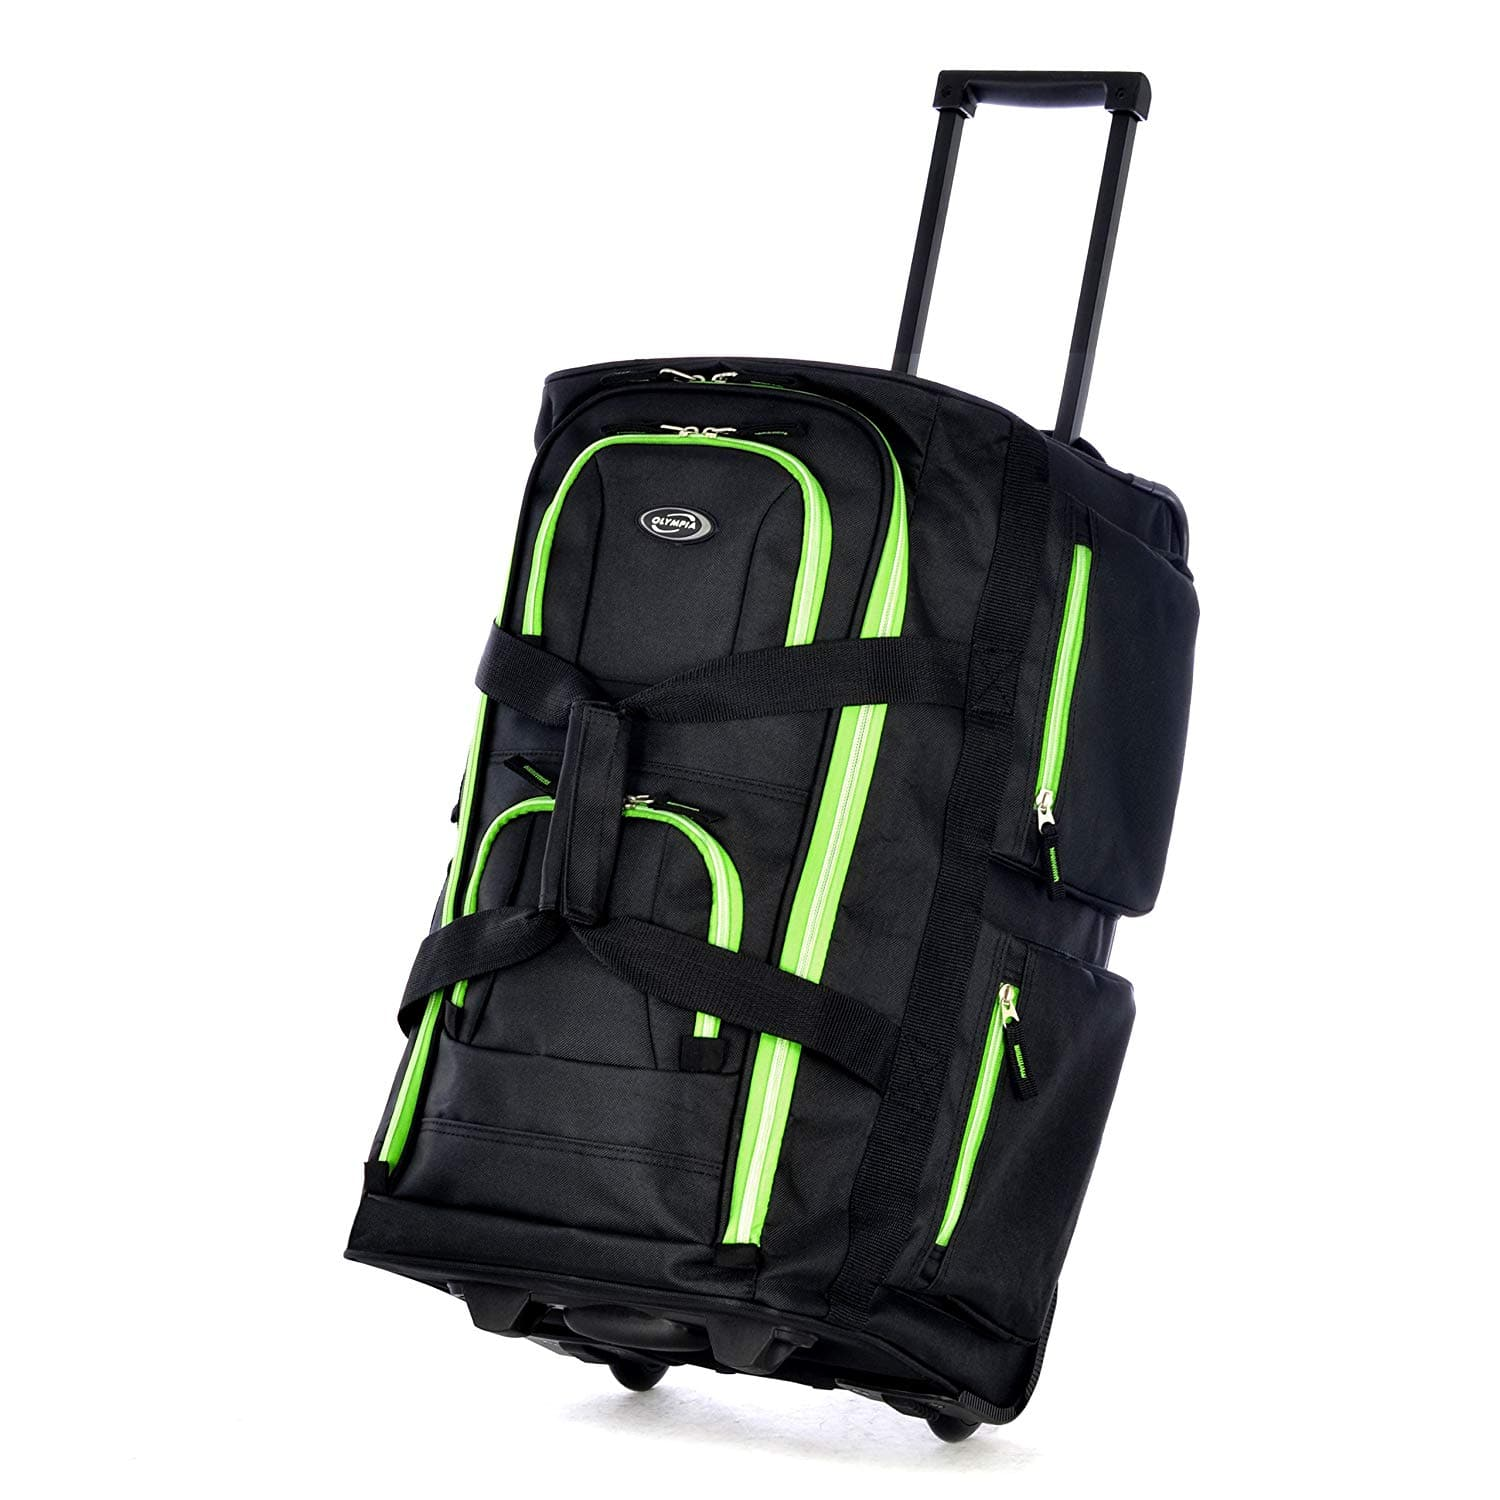 Olympia 22 Inch 8 Pocket Rolling Duffel, One Size, 5 colors available for $19.99 FSSS @ Amazon